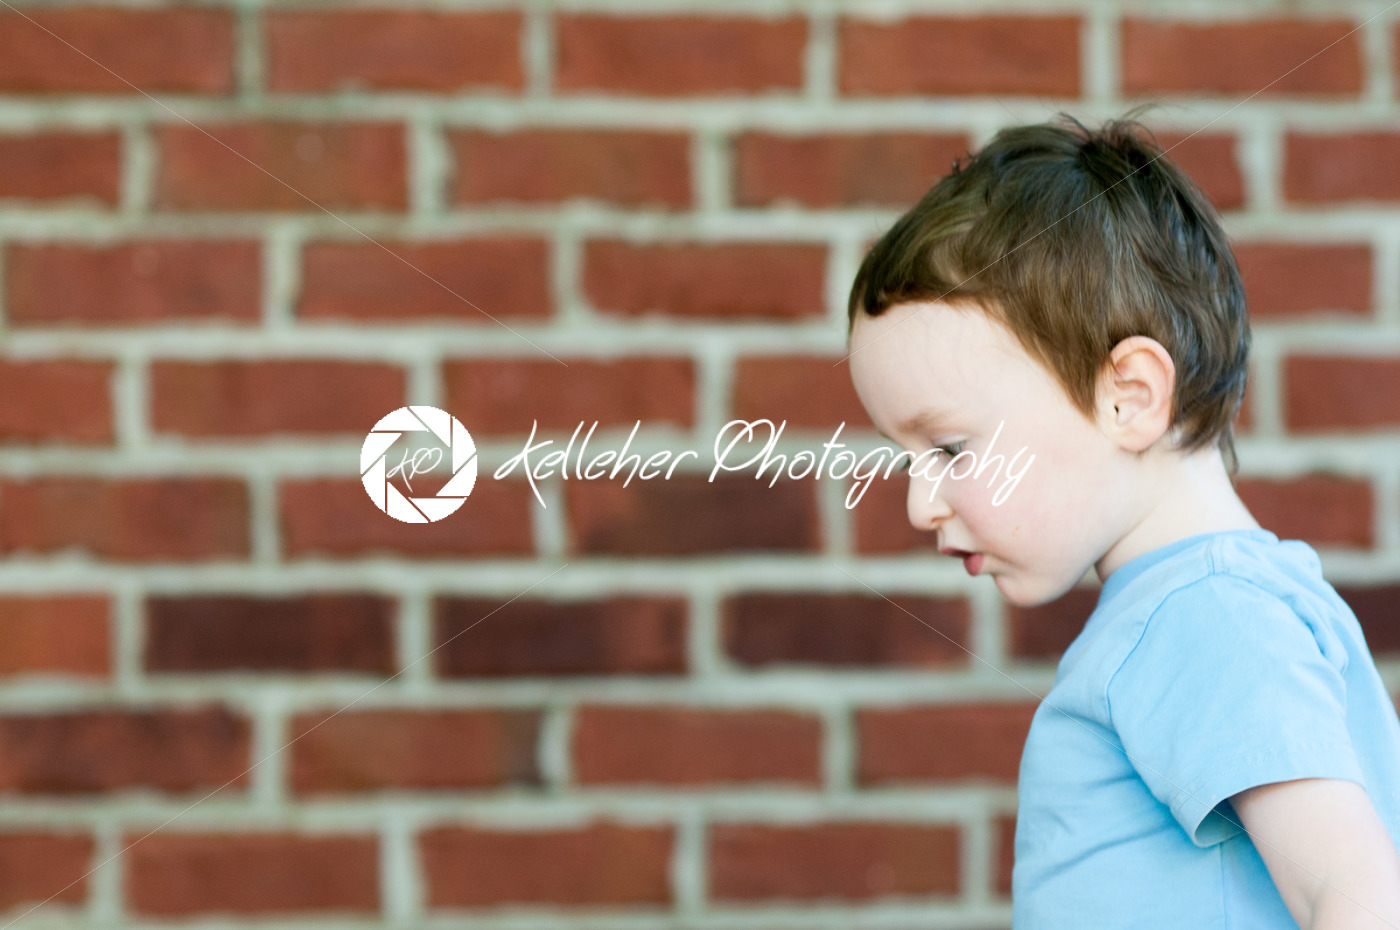 Young toddler boy in front of red birck wall - Kelleher Photography Store